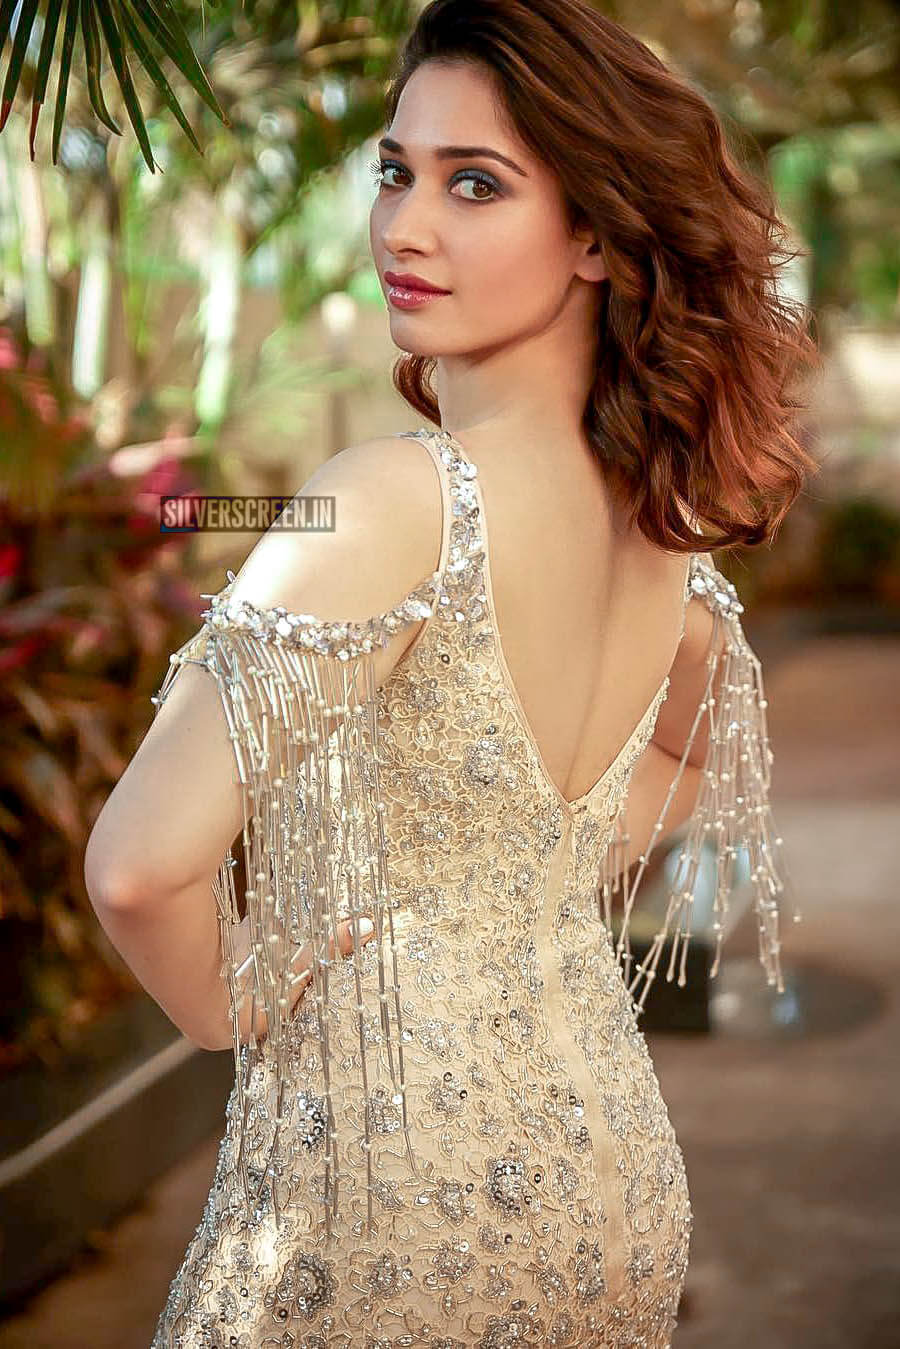 Tamannaah Bhatia Photos(images), Height, Biography, Movies, Date Of Birth, House, Details, Marriage, Boyfriend, Net Worth, Education, Instagram, Facebook, Twitter, Wiki, Imdb, Youtube (76)